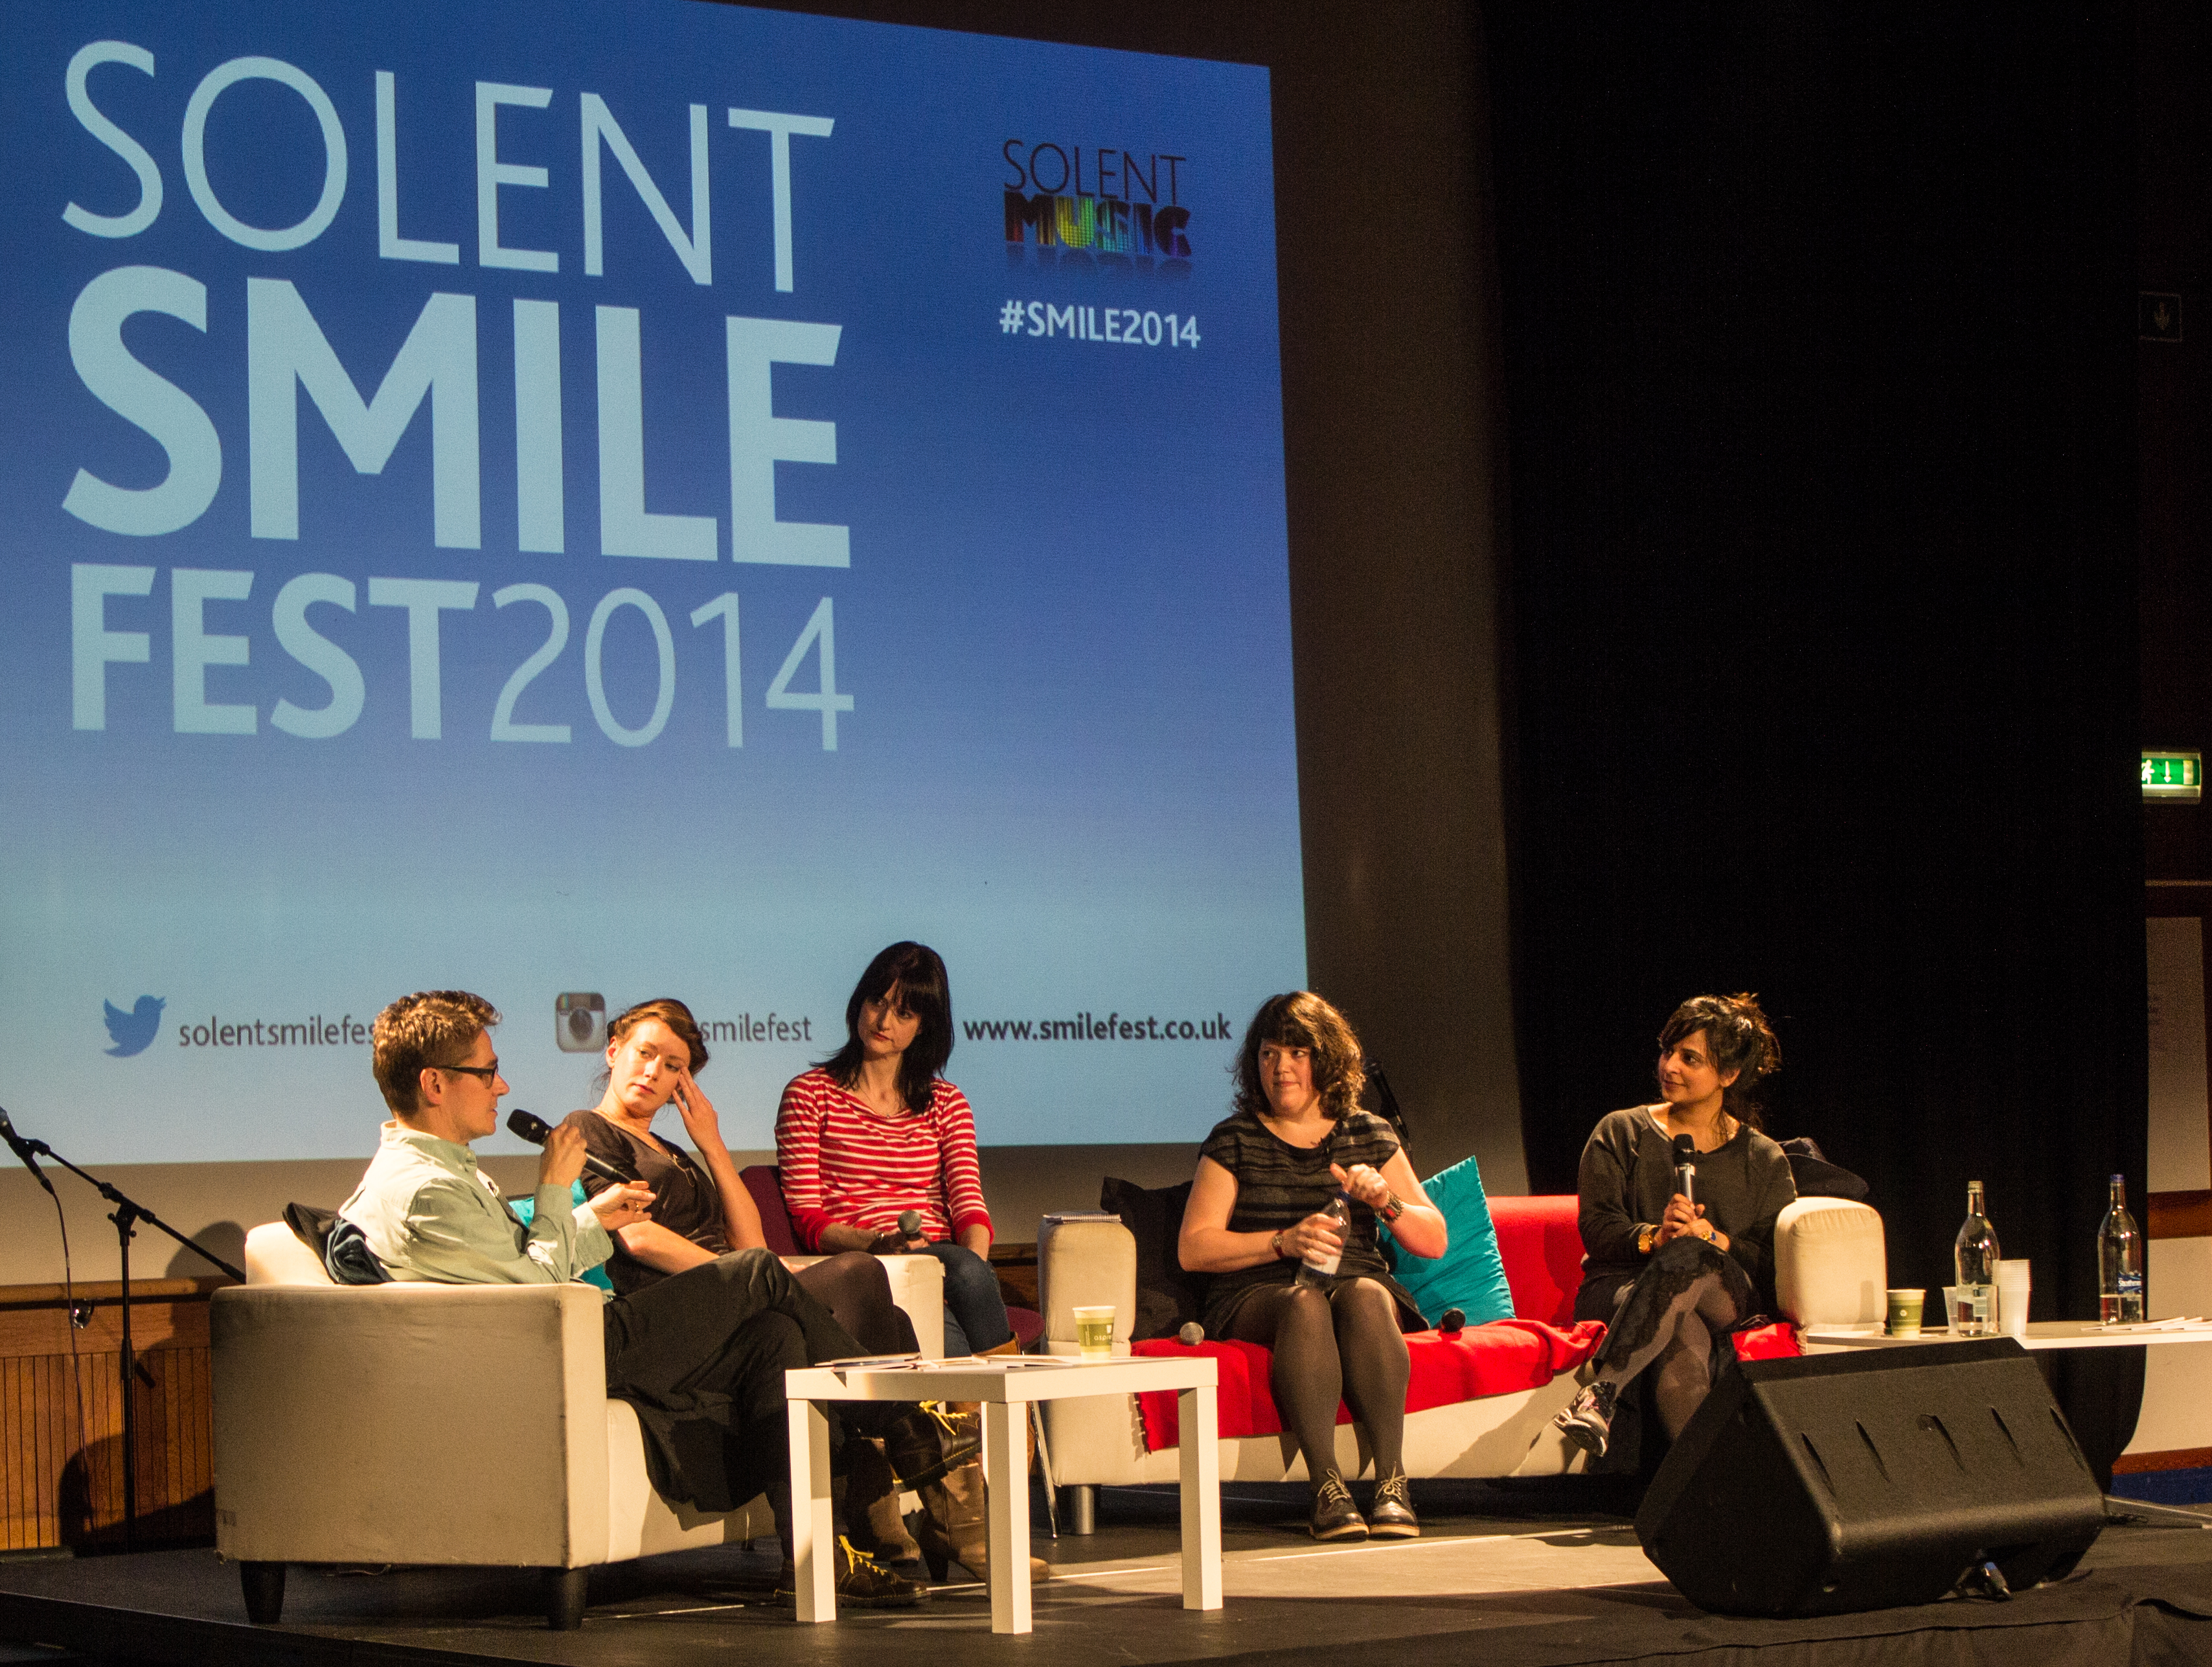 Solent Smile Festival 2014 conference on the role of women on the radio featuring Laura Barton, Nosheen Iqbal, Ruth Barnes, and John Kennedy.